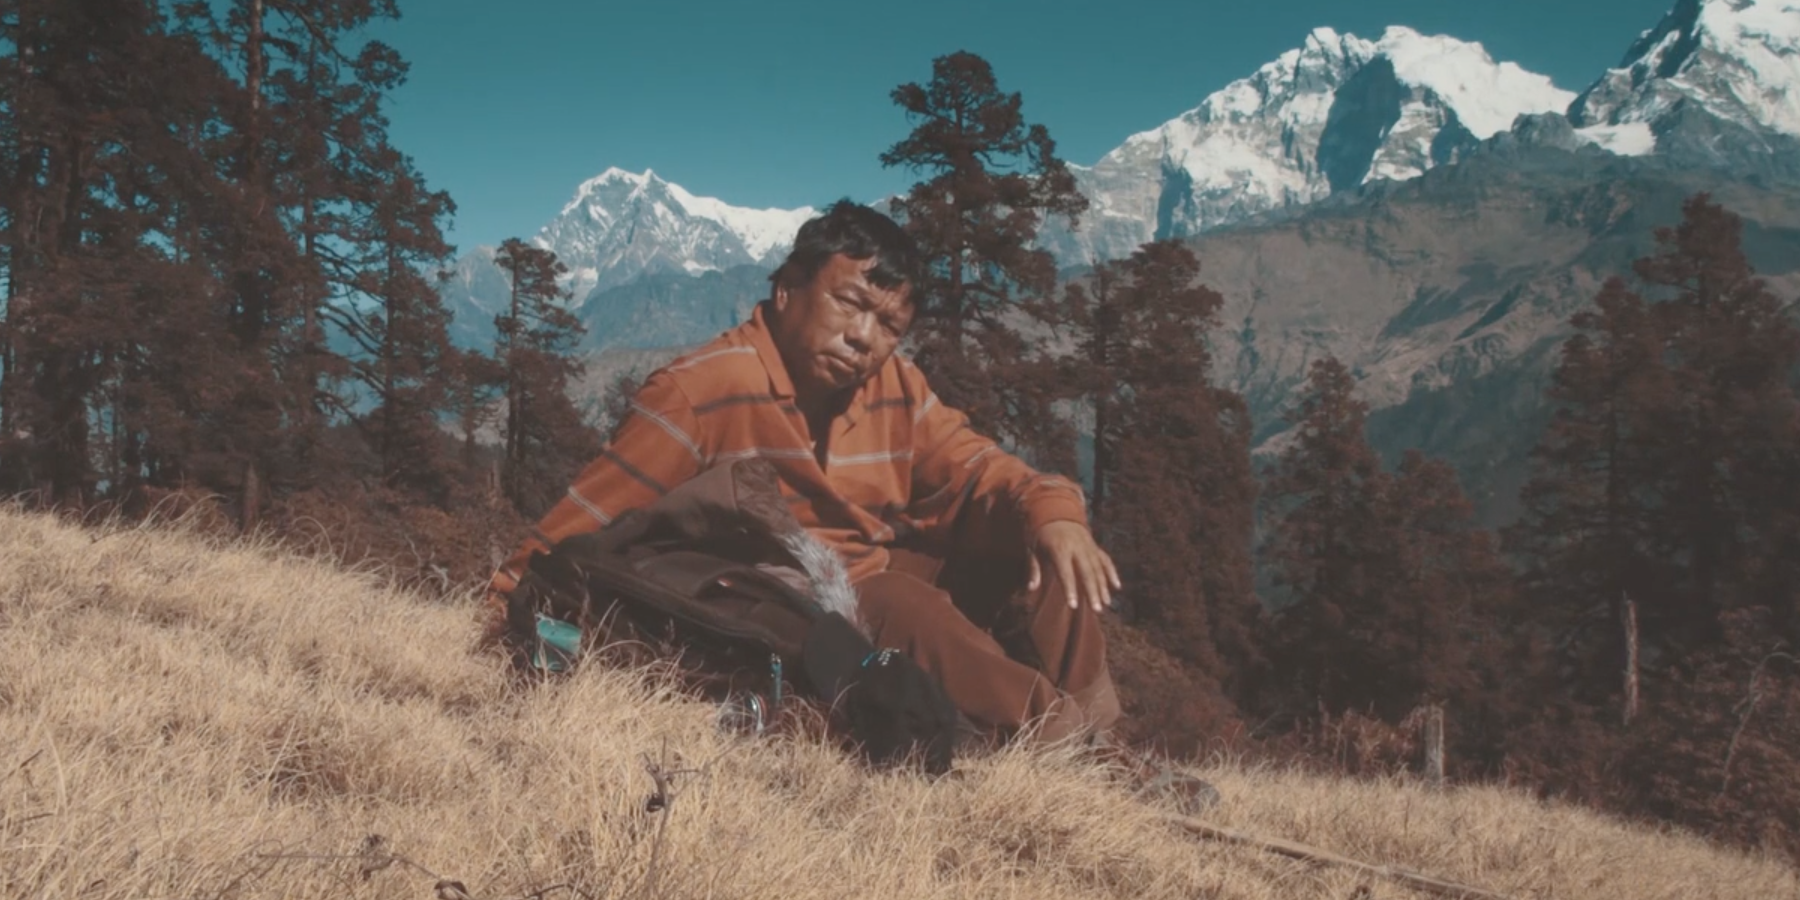 Watch How One Man Took the Internet to 60,000 People in Rural Nepal